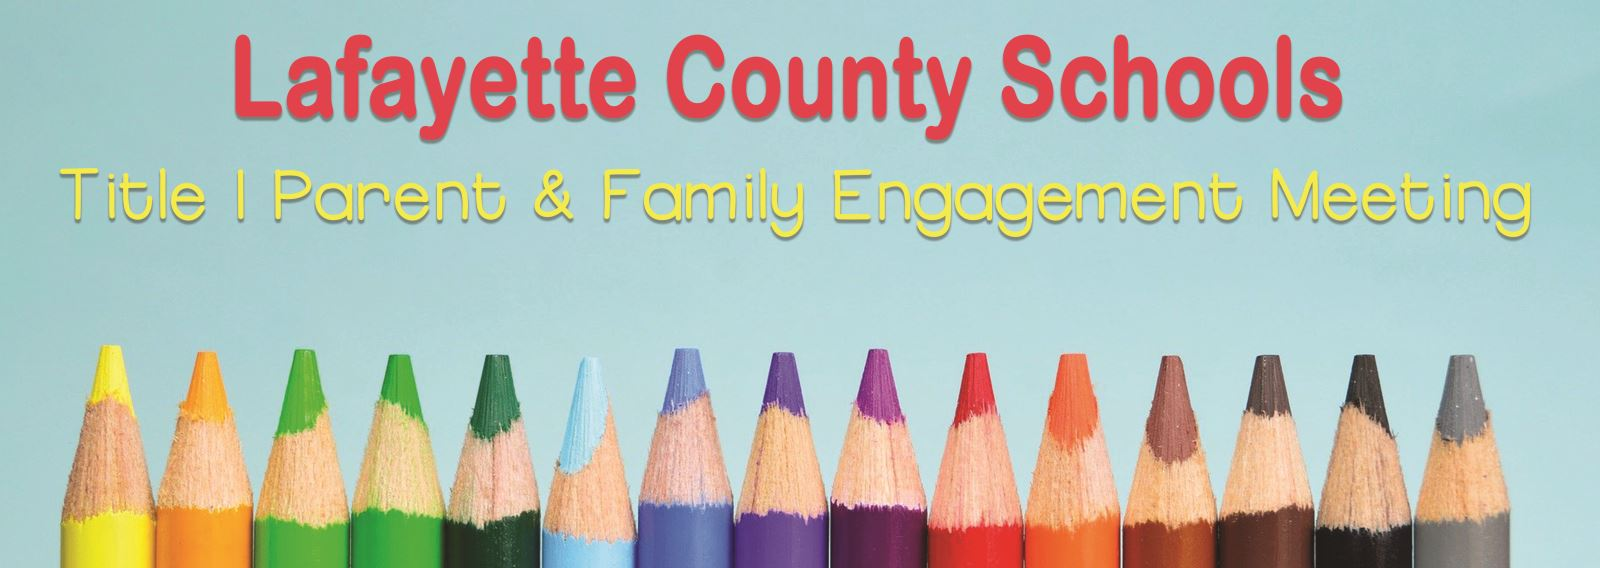 Lafayette County SchoolsTitle I Parent & Family Engagement Meeting